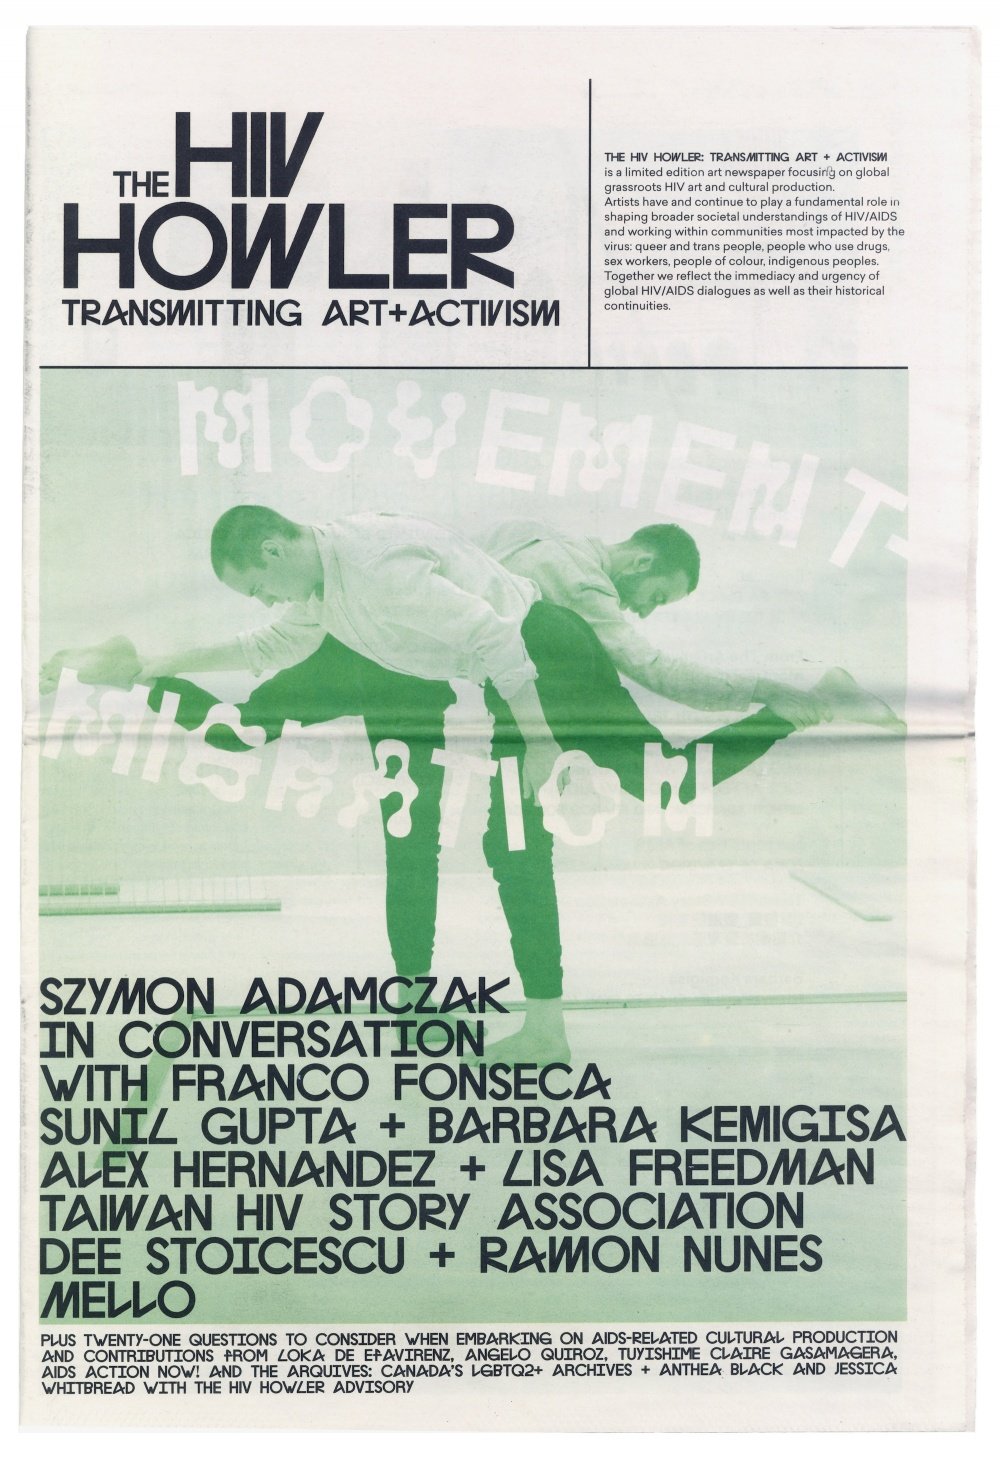 The HIV Howler: Transmitting Art and Activism, Issue 4: Movement